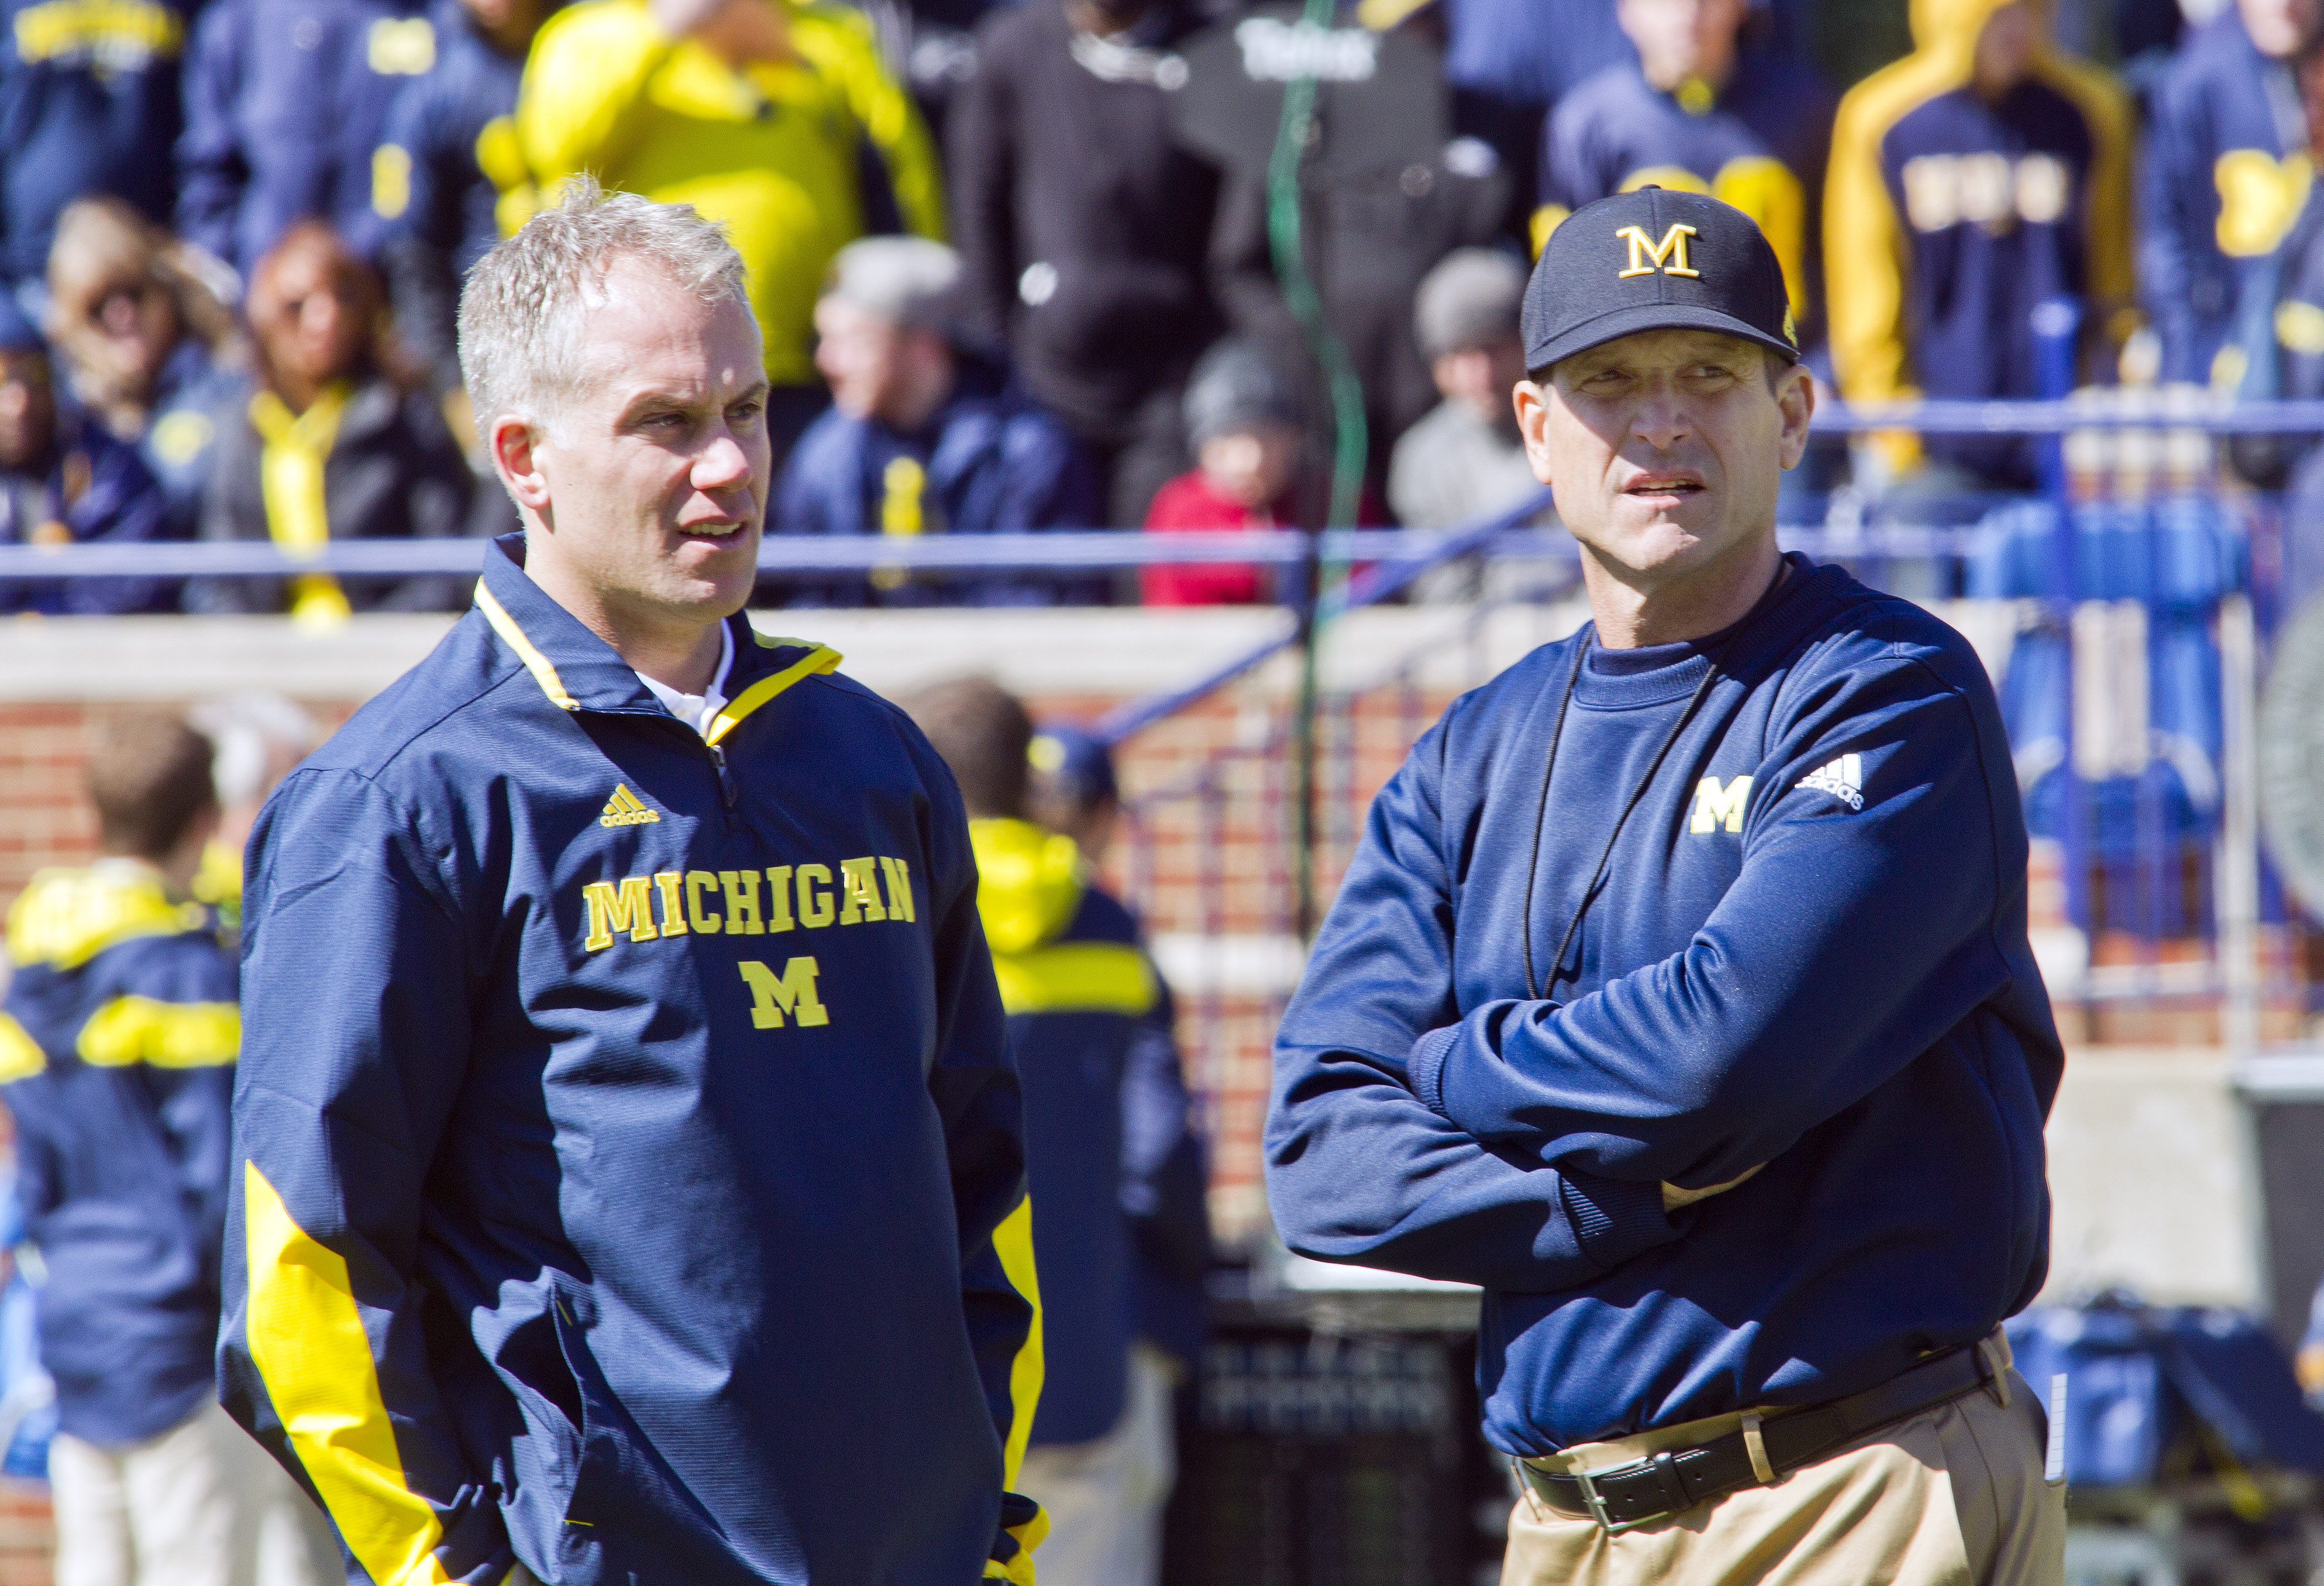 Michigan defensive coordinator D.J. Durkin, left, and head coach Jim Harbaugh, right, watch players warmup before the NCAA college football team's spring game in Ann Arbor, Mich., Saturday, April 4, 2015. (AP Photo/Tony Ding)